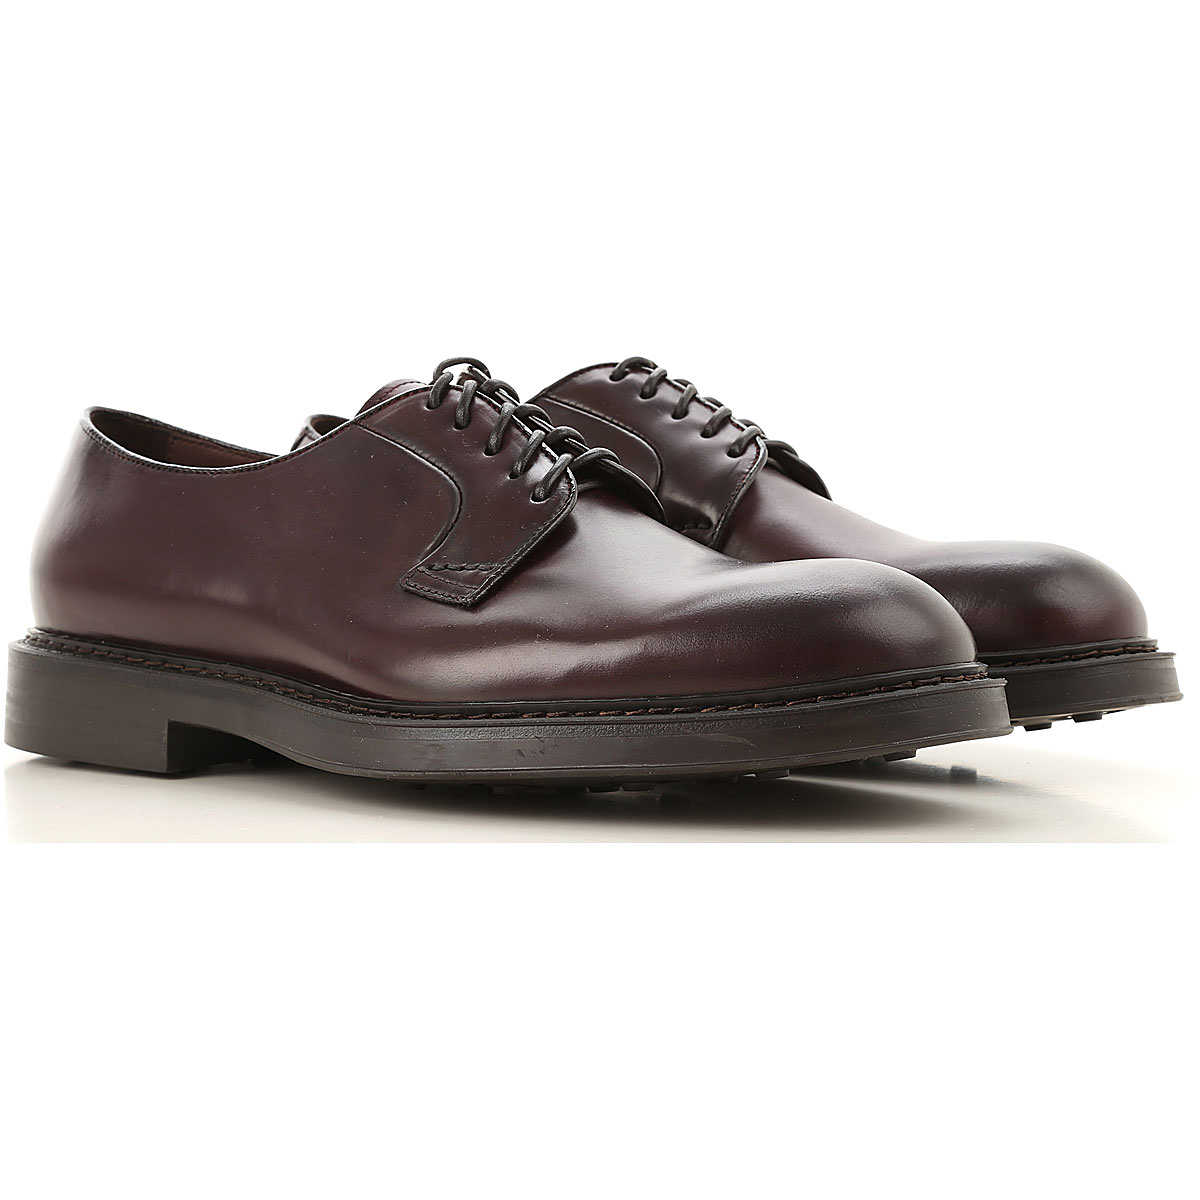 Doucals Lace Up Shoes for Men Oxfords 5.5 6 6.5 6.75 7 7.5 8 9 9.25 9.5 Derbies and Brogues UK - GOOFASH